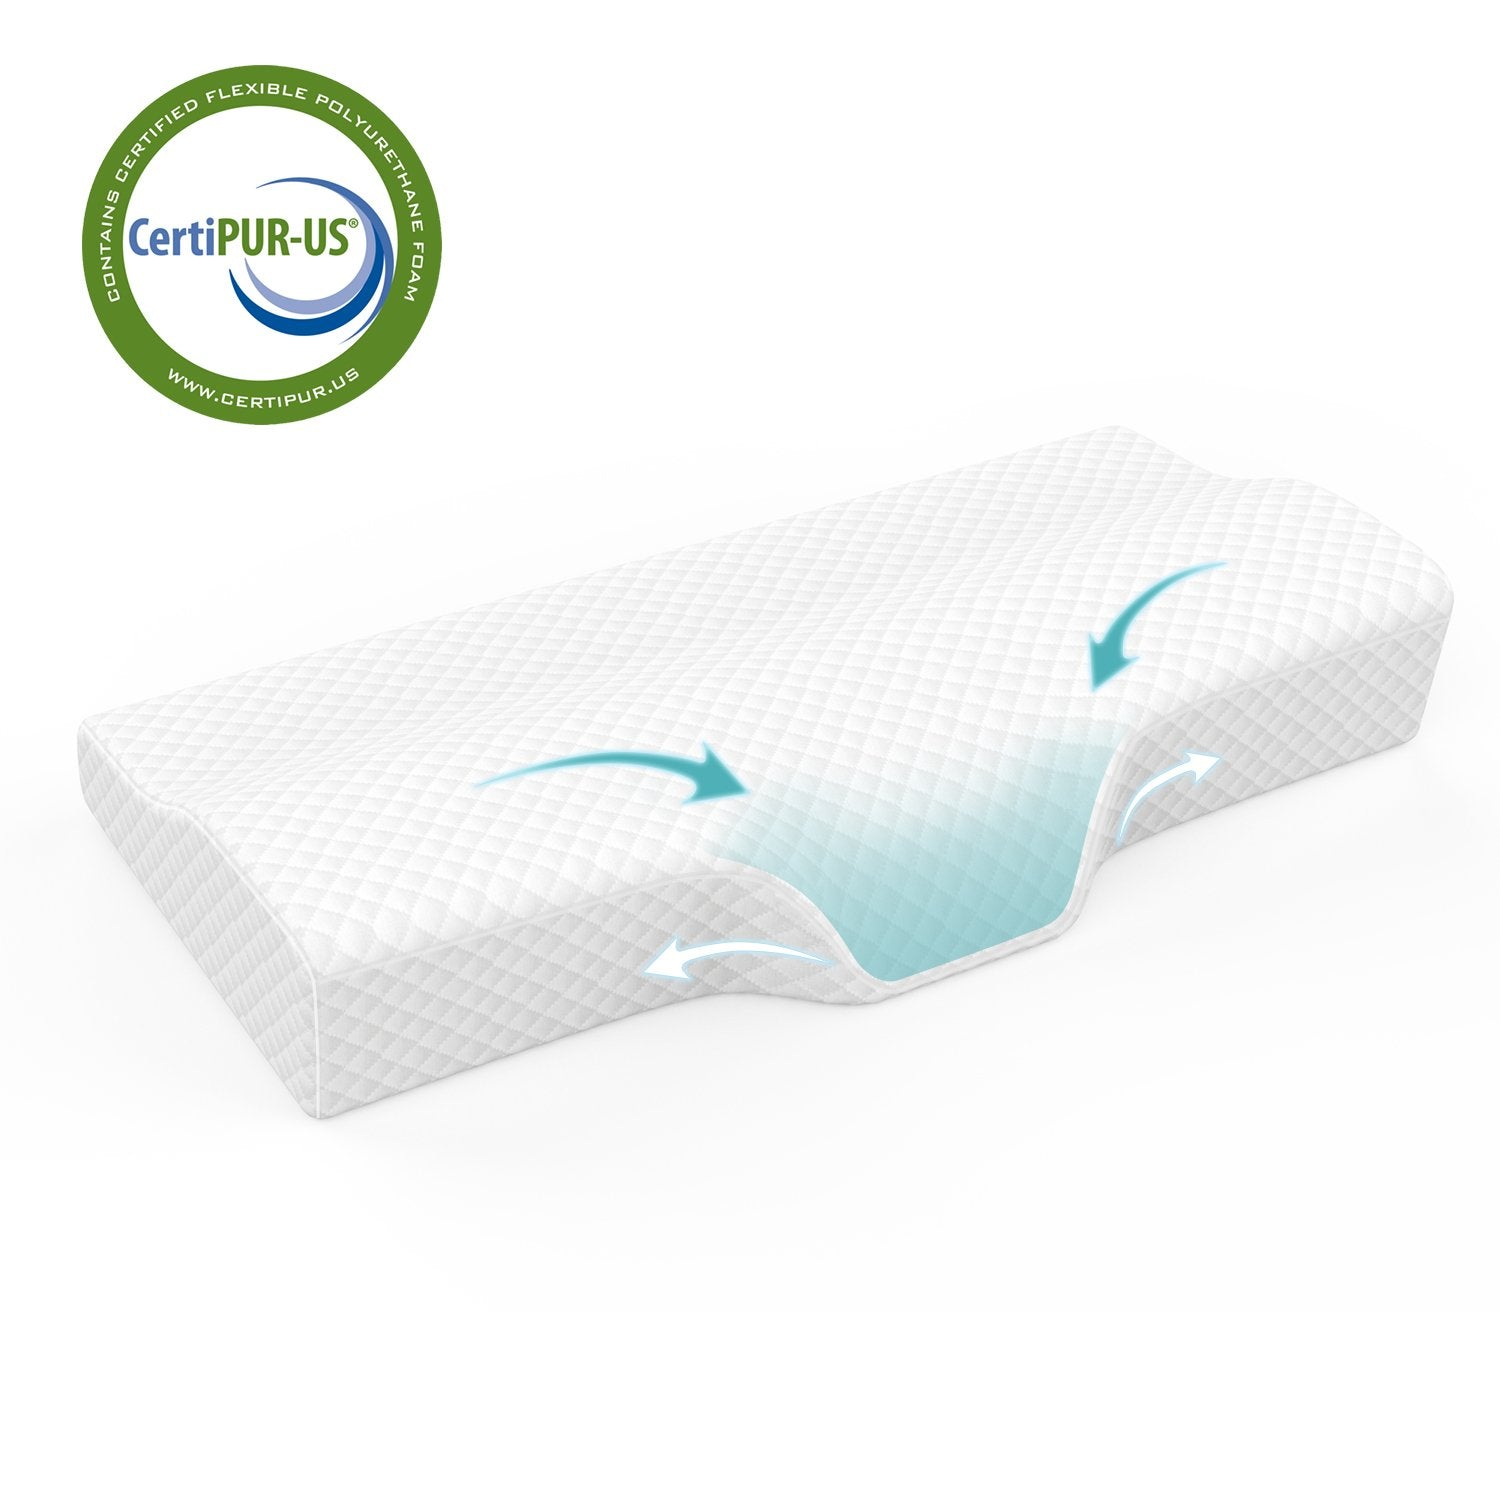 Contoured Orthopedic Neck Pillow - Premium Memory Foam